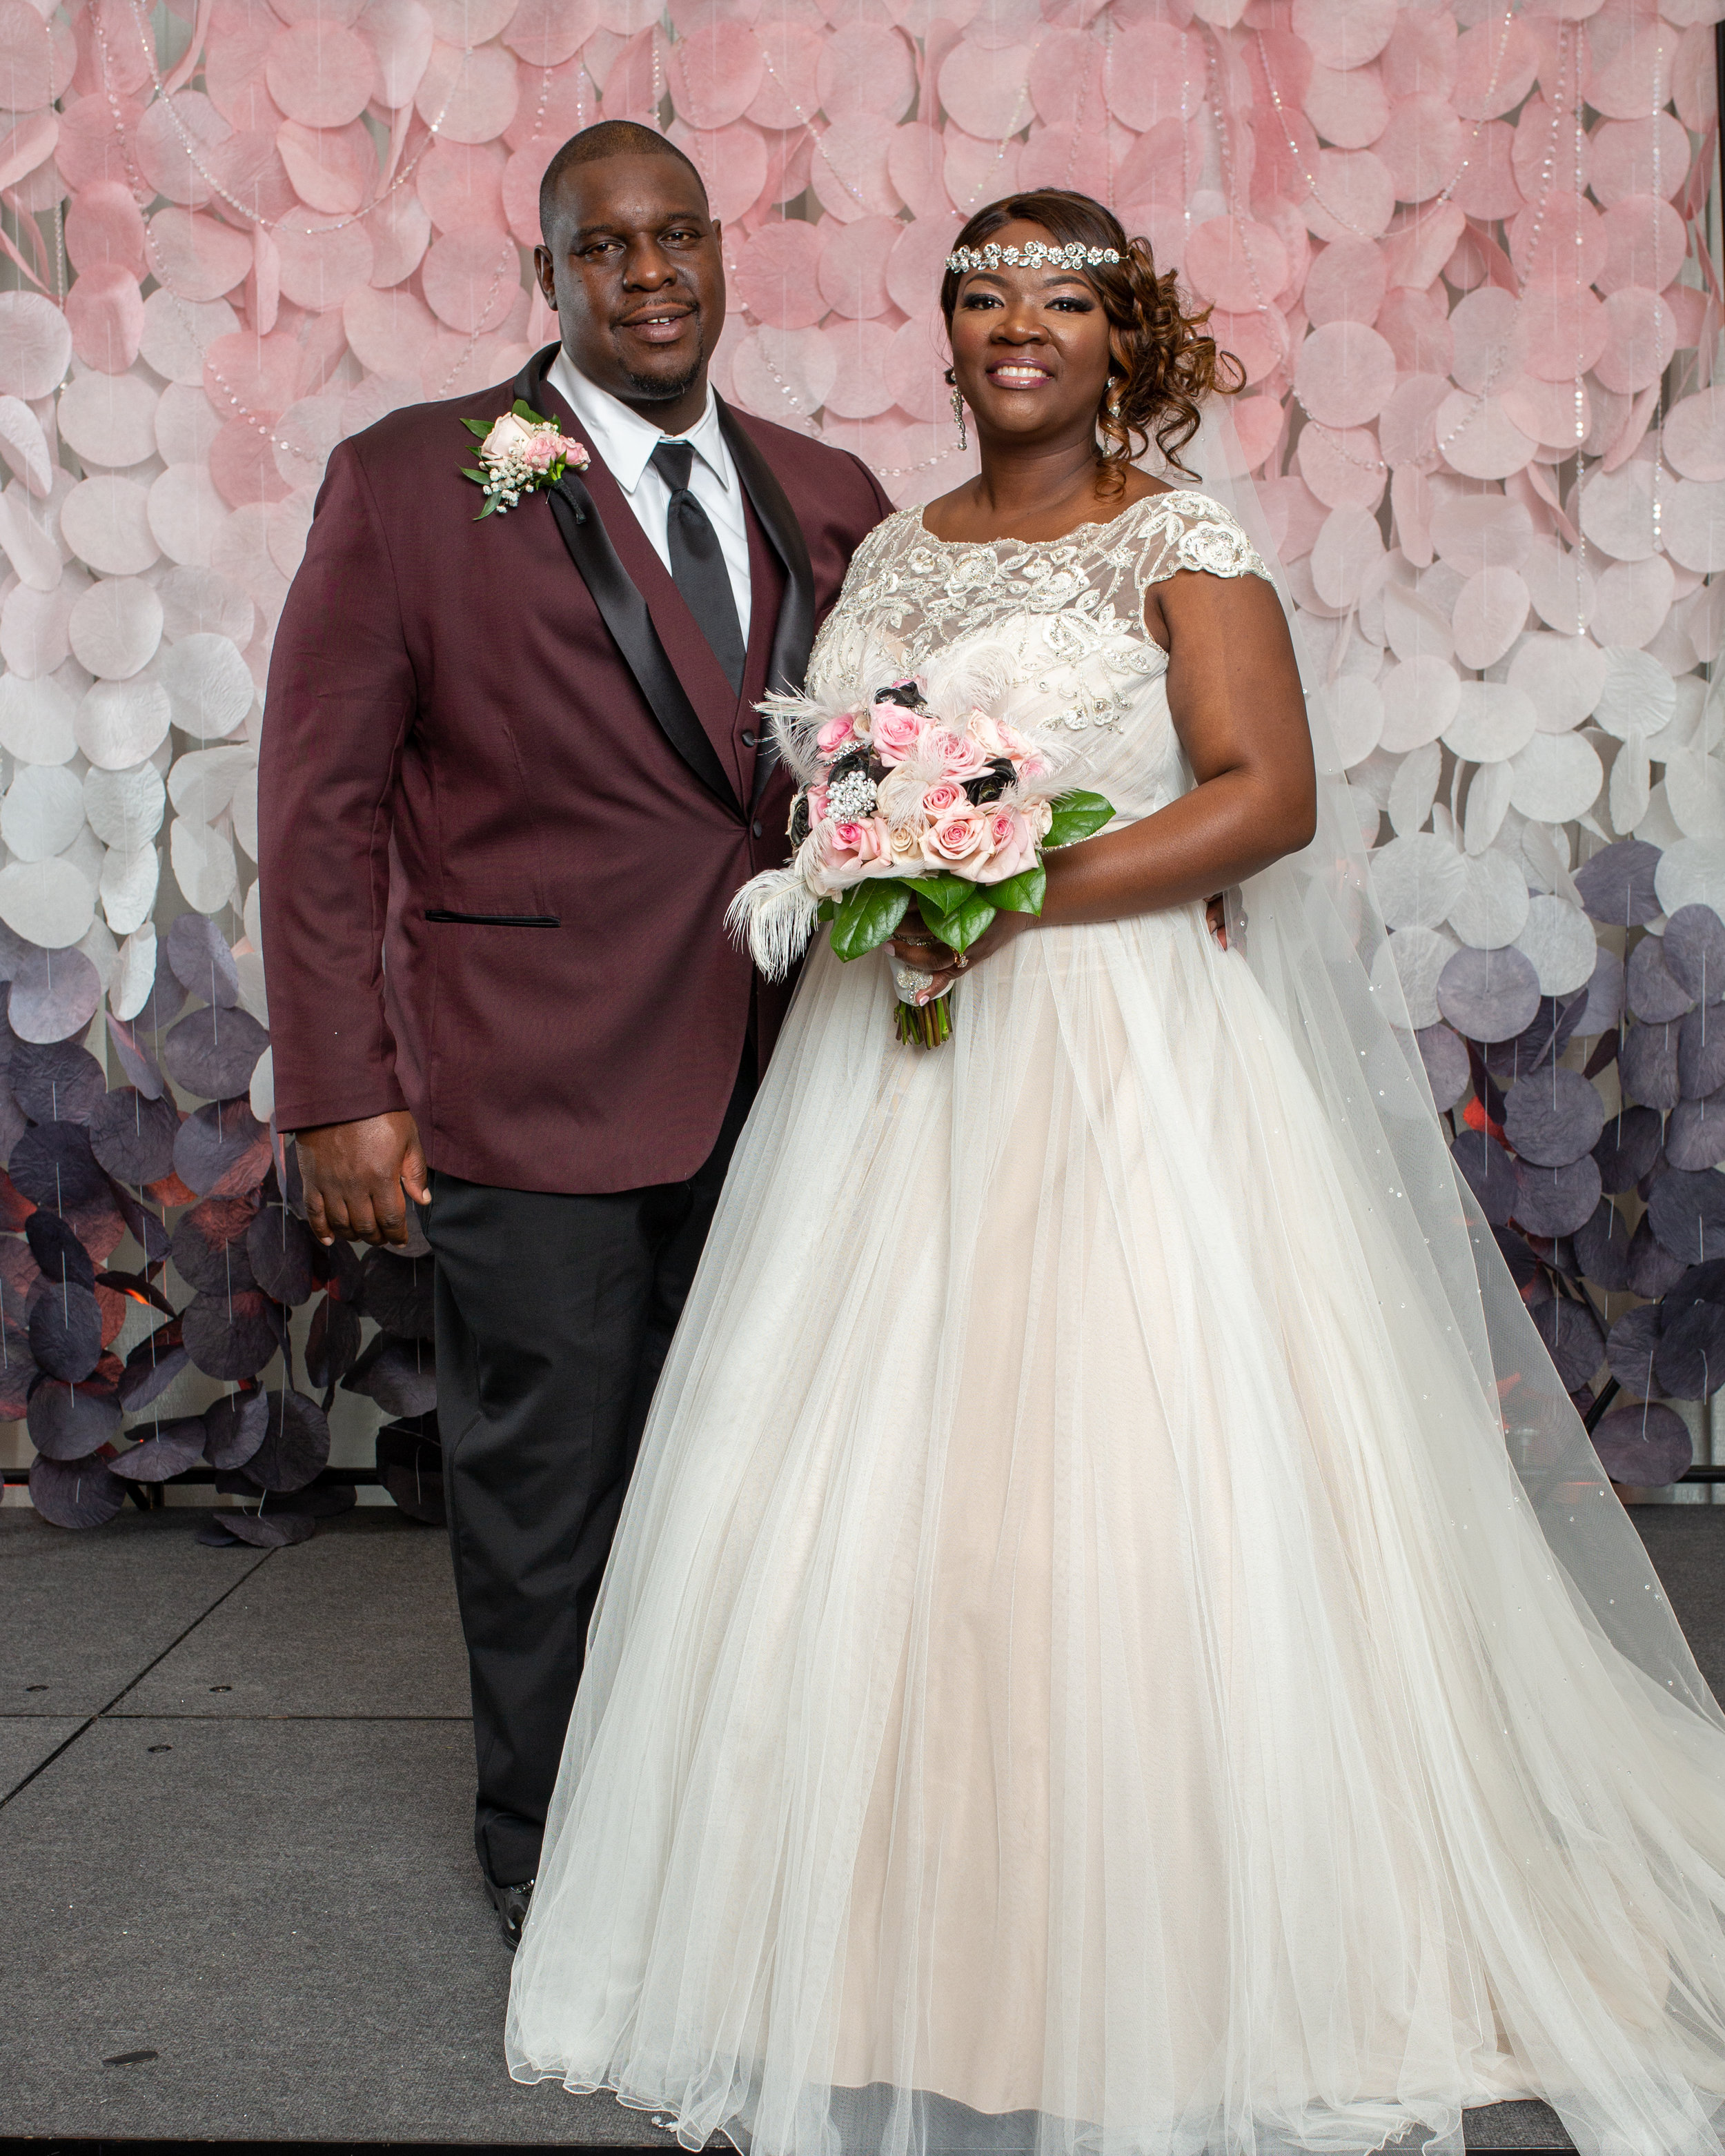 Official Royal Wedding Pictures.Xavier Juanisha Virginia Beach Convention Center Official Royal